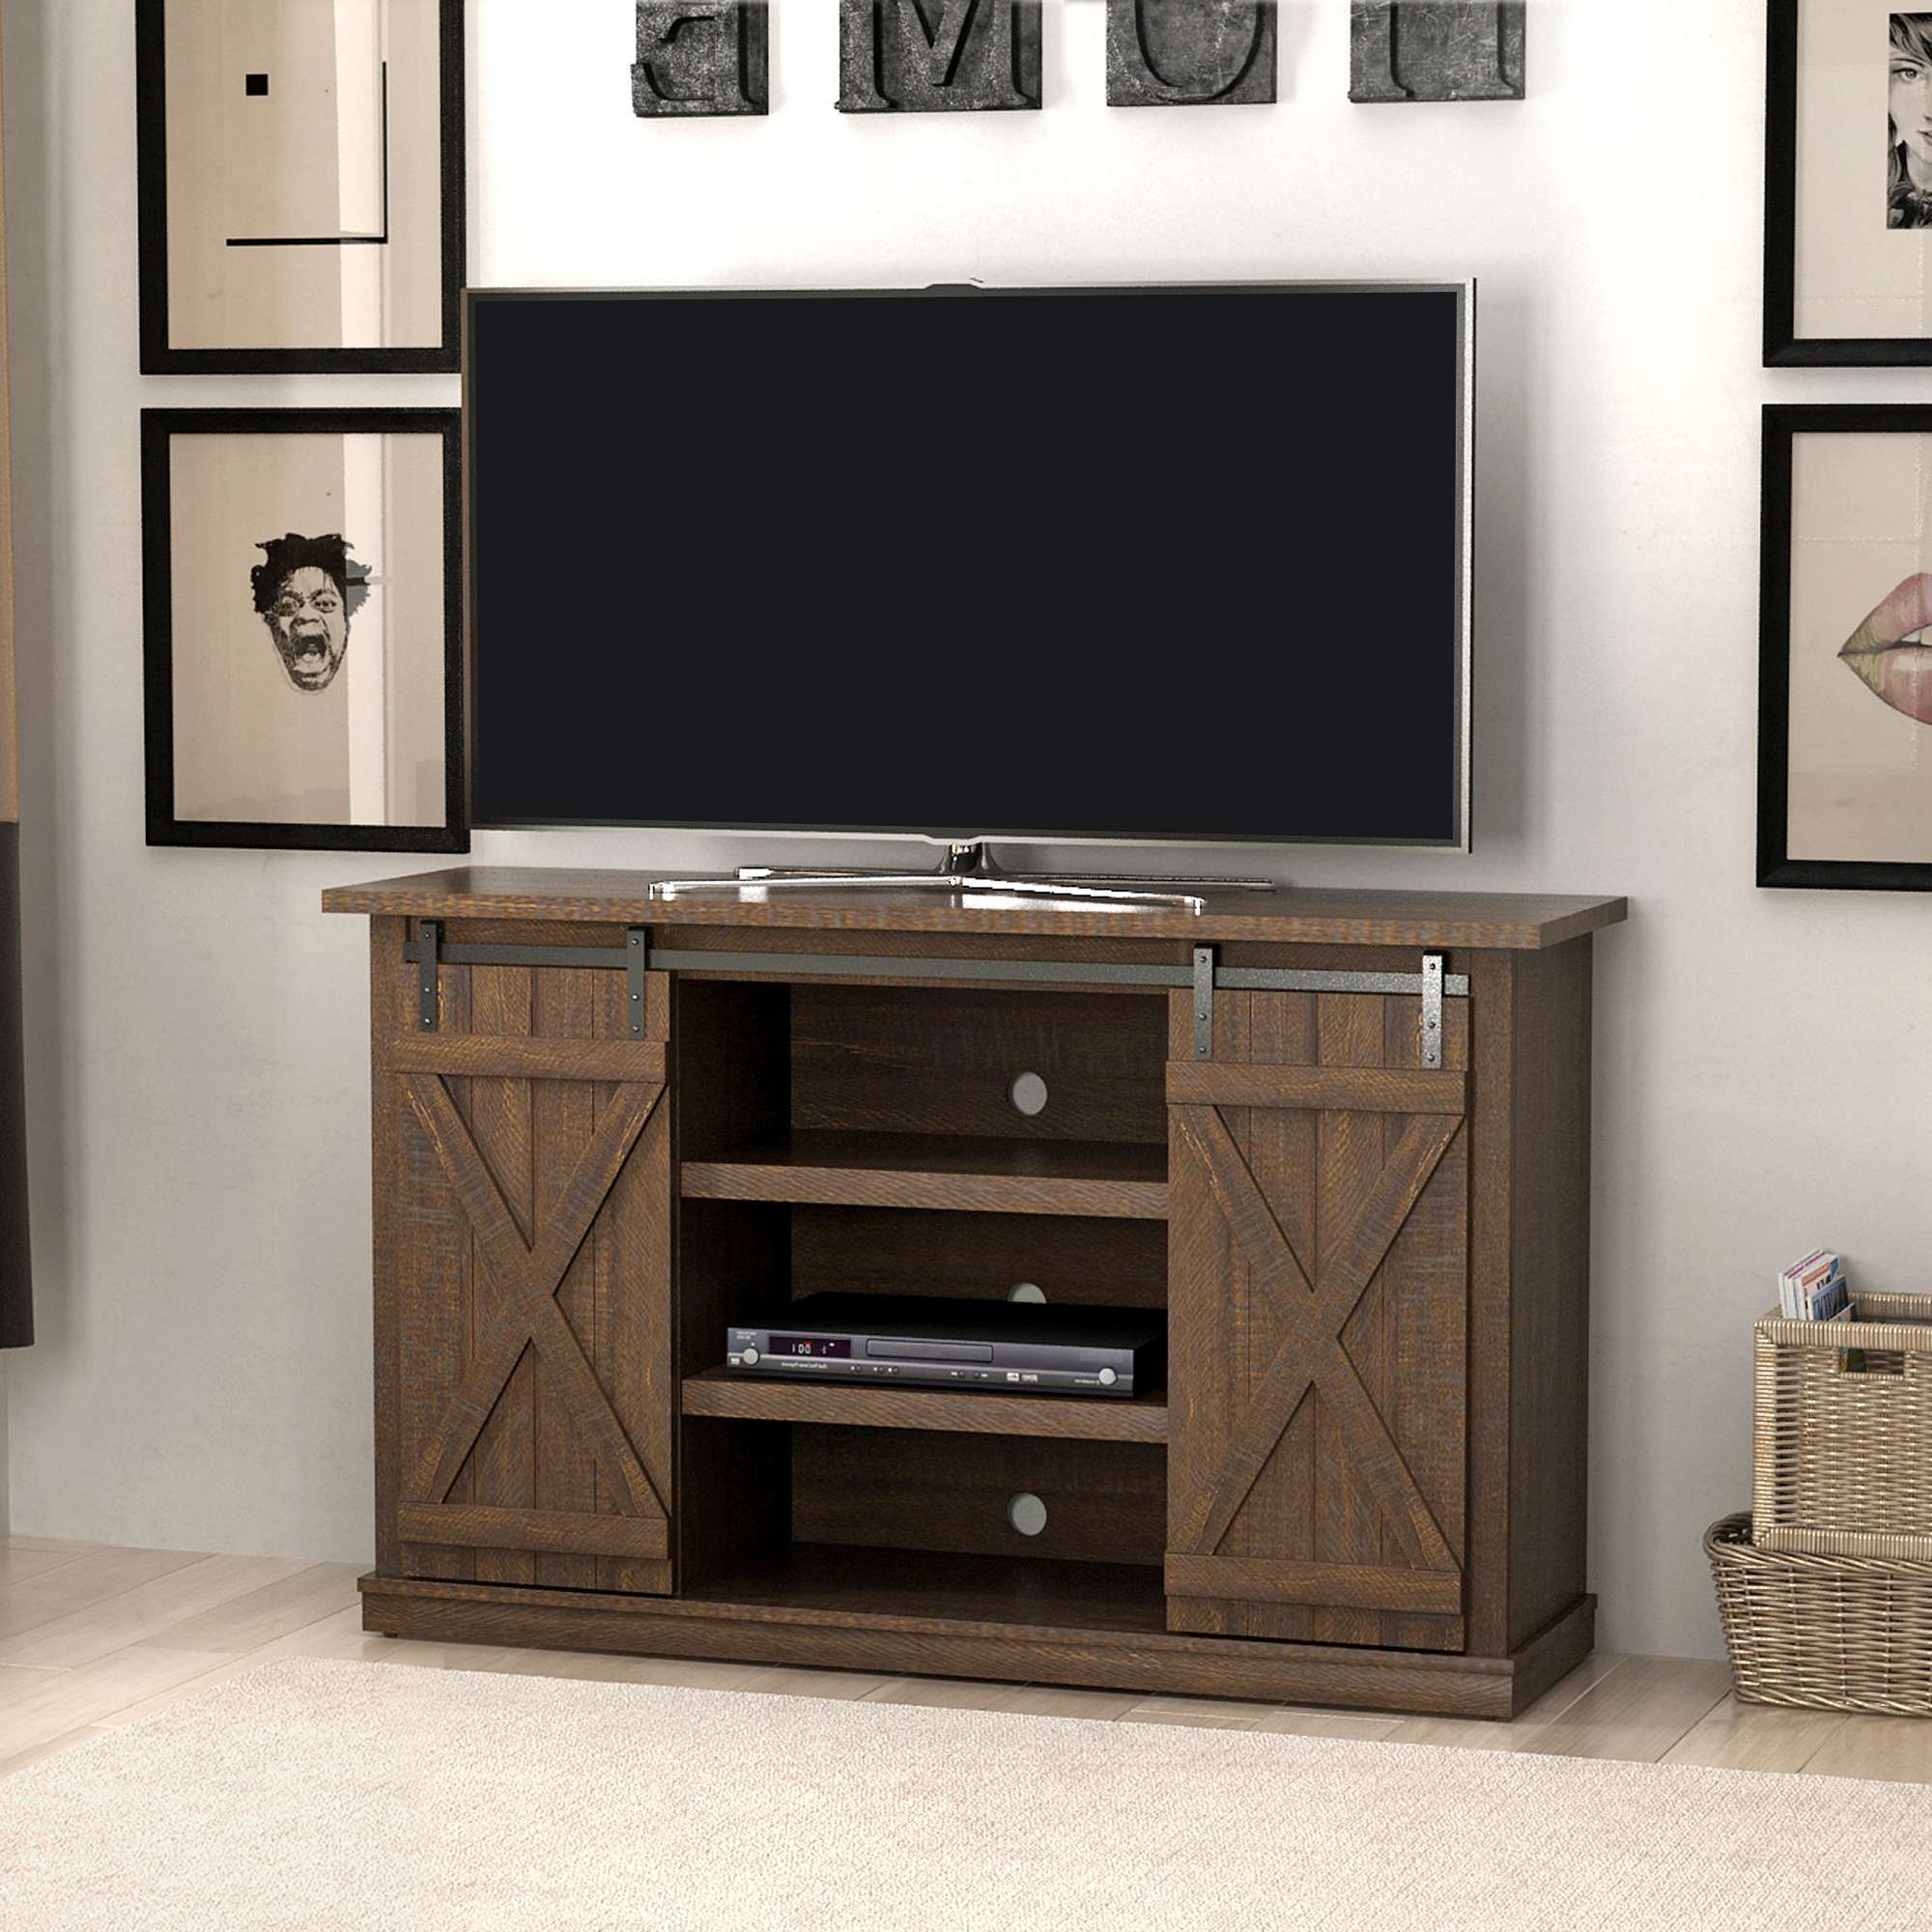 Tv Stands – Walmart Within Wooden Tv Stands For Flat Screens (View 6 of 15)